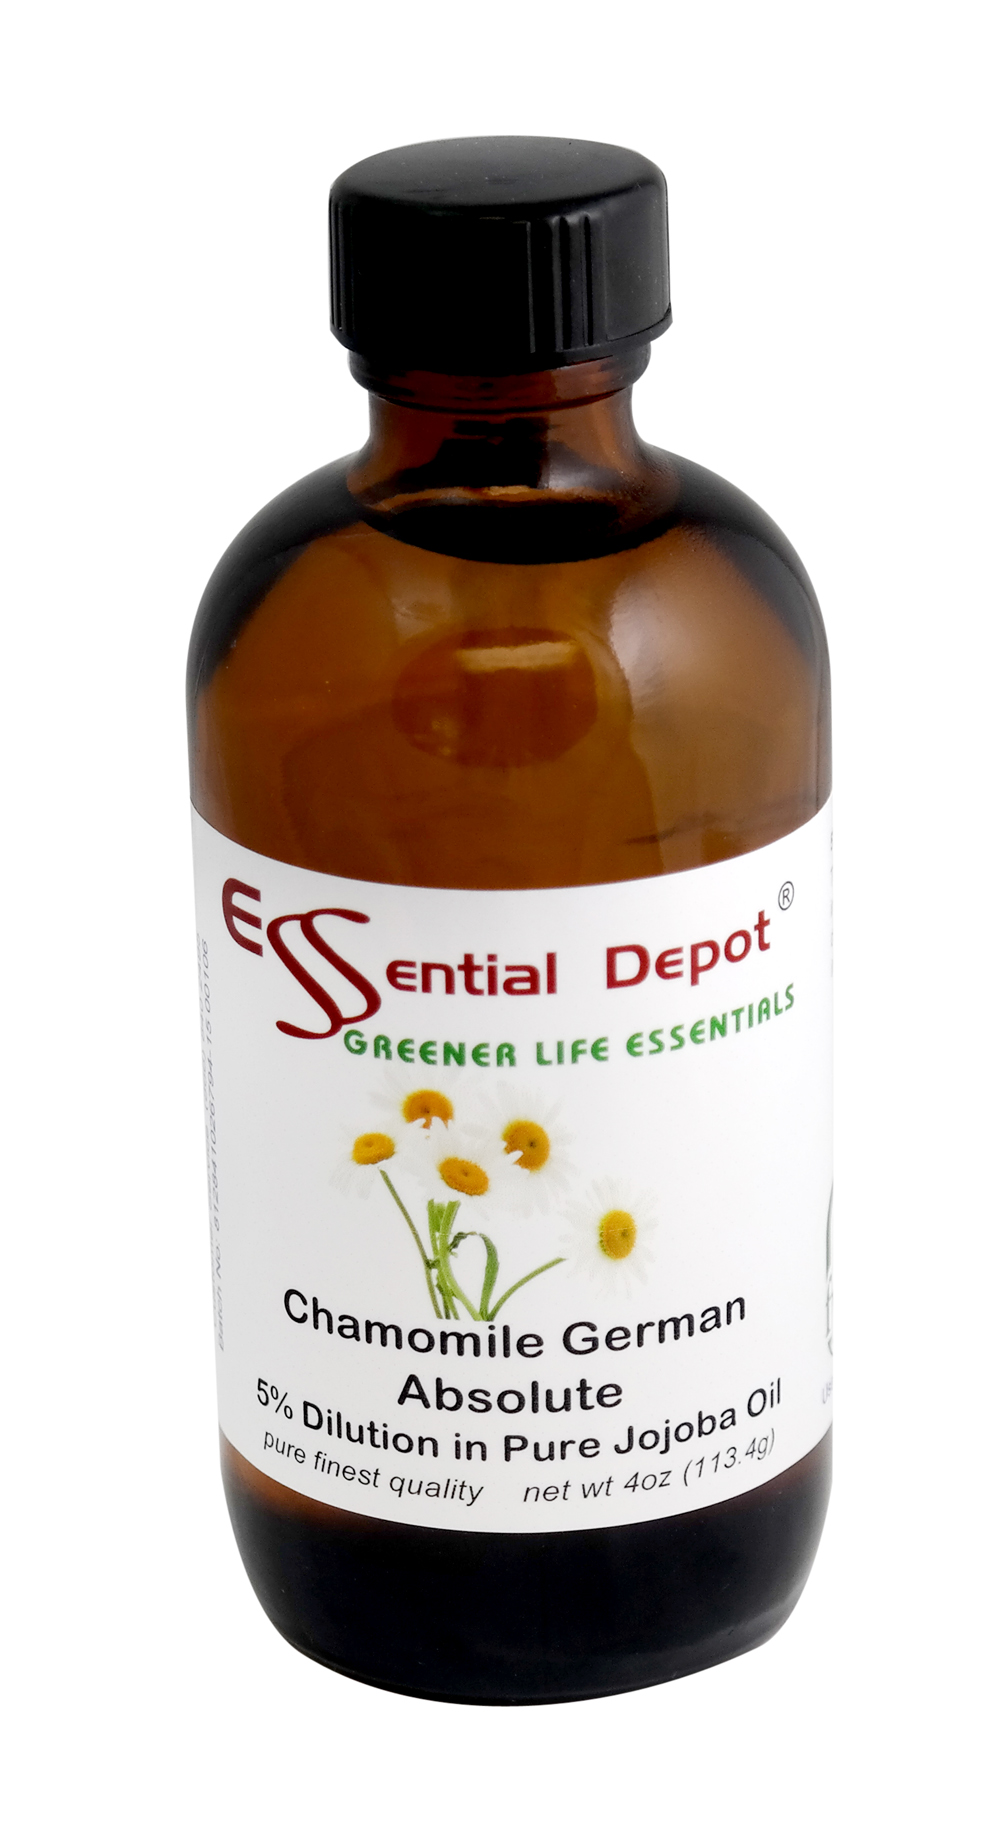 Chamomile German Absolute 5% Dilution in Pure Jojoba - 4oz